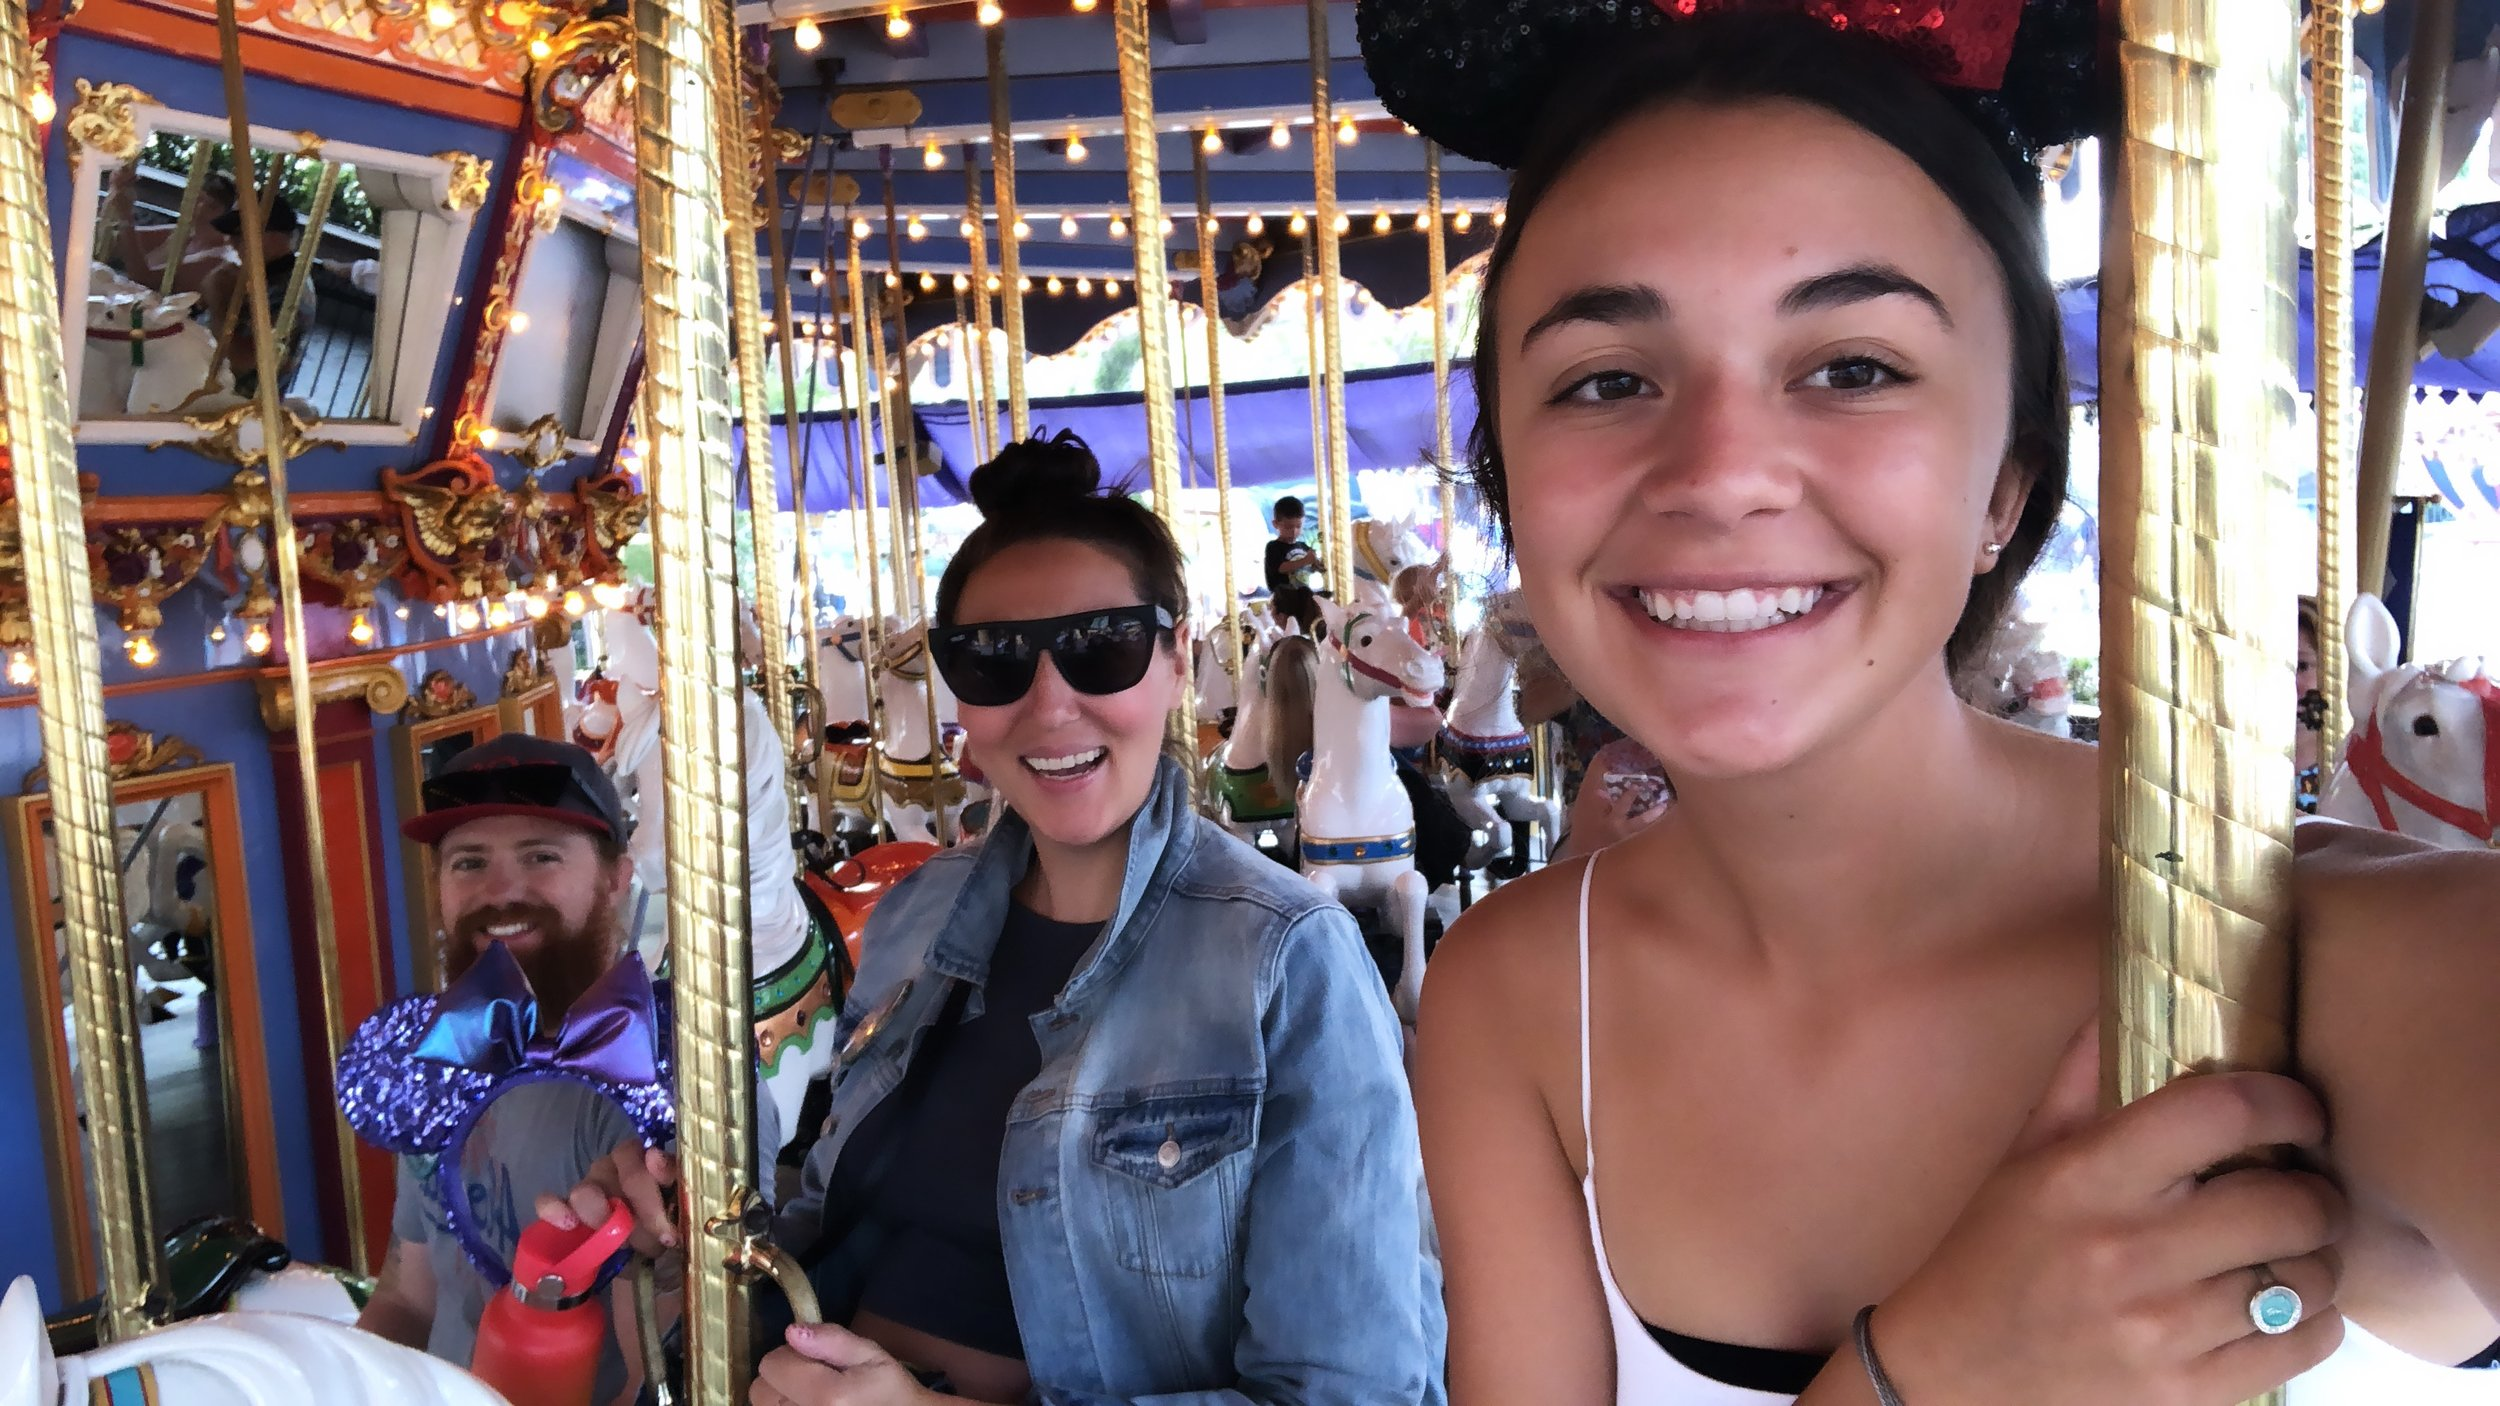 My baby sister and husband riding the carousel together!